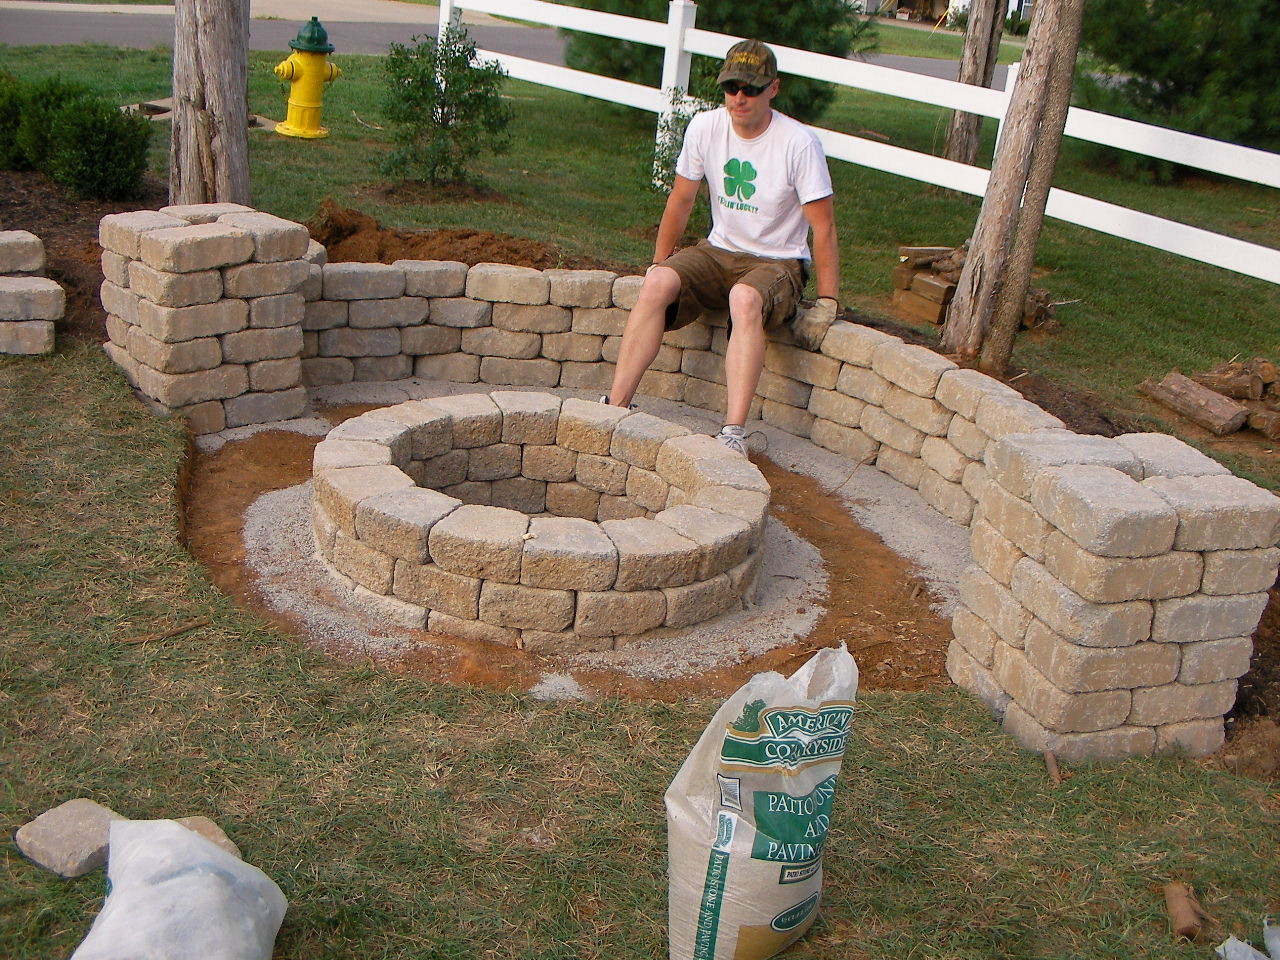 Best ideas about Backyard Fire Pit . Save or Pin Creatively Luxurious DIY Fire Pit Project Here to Enhance Now.